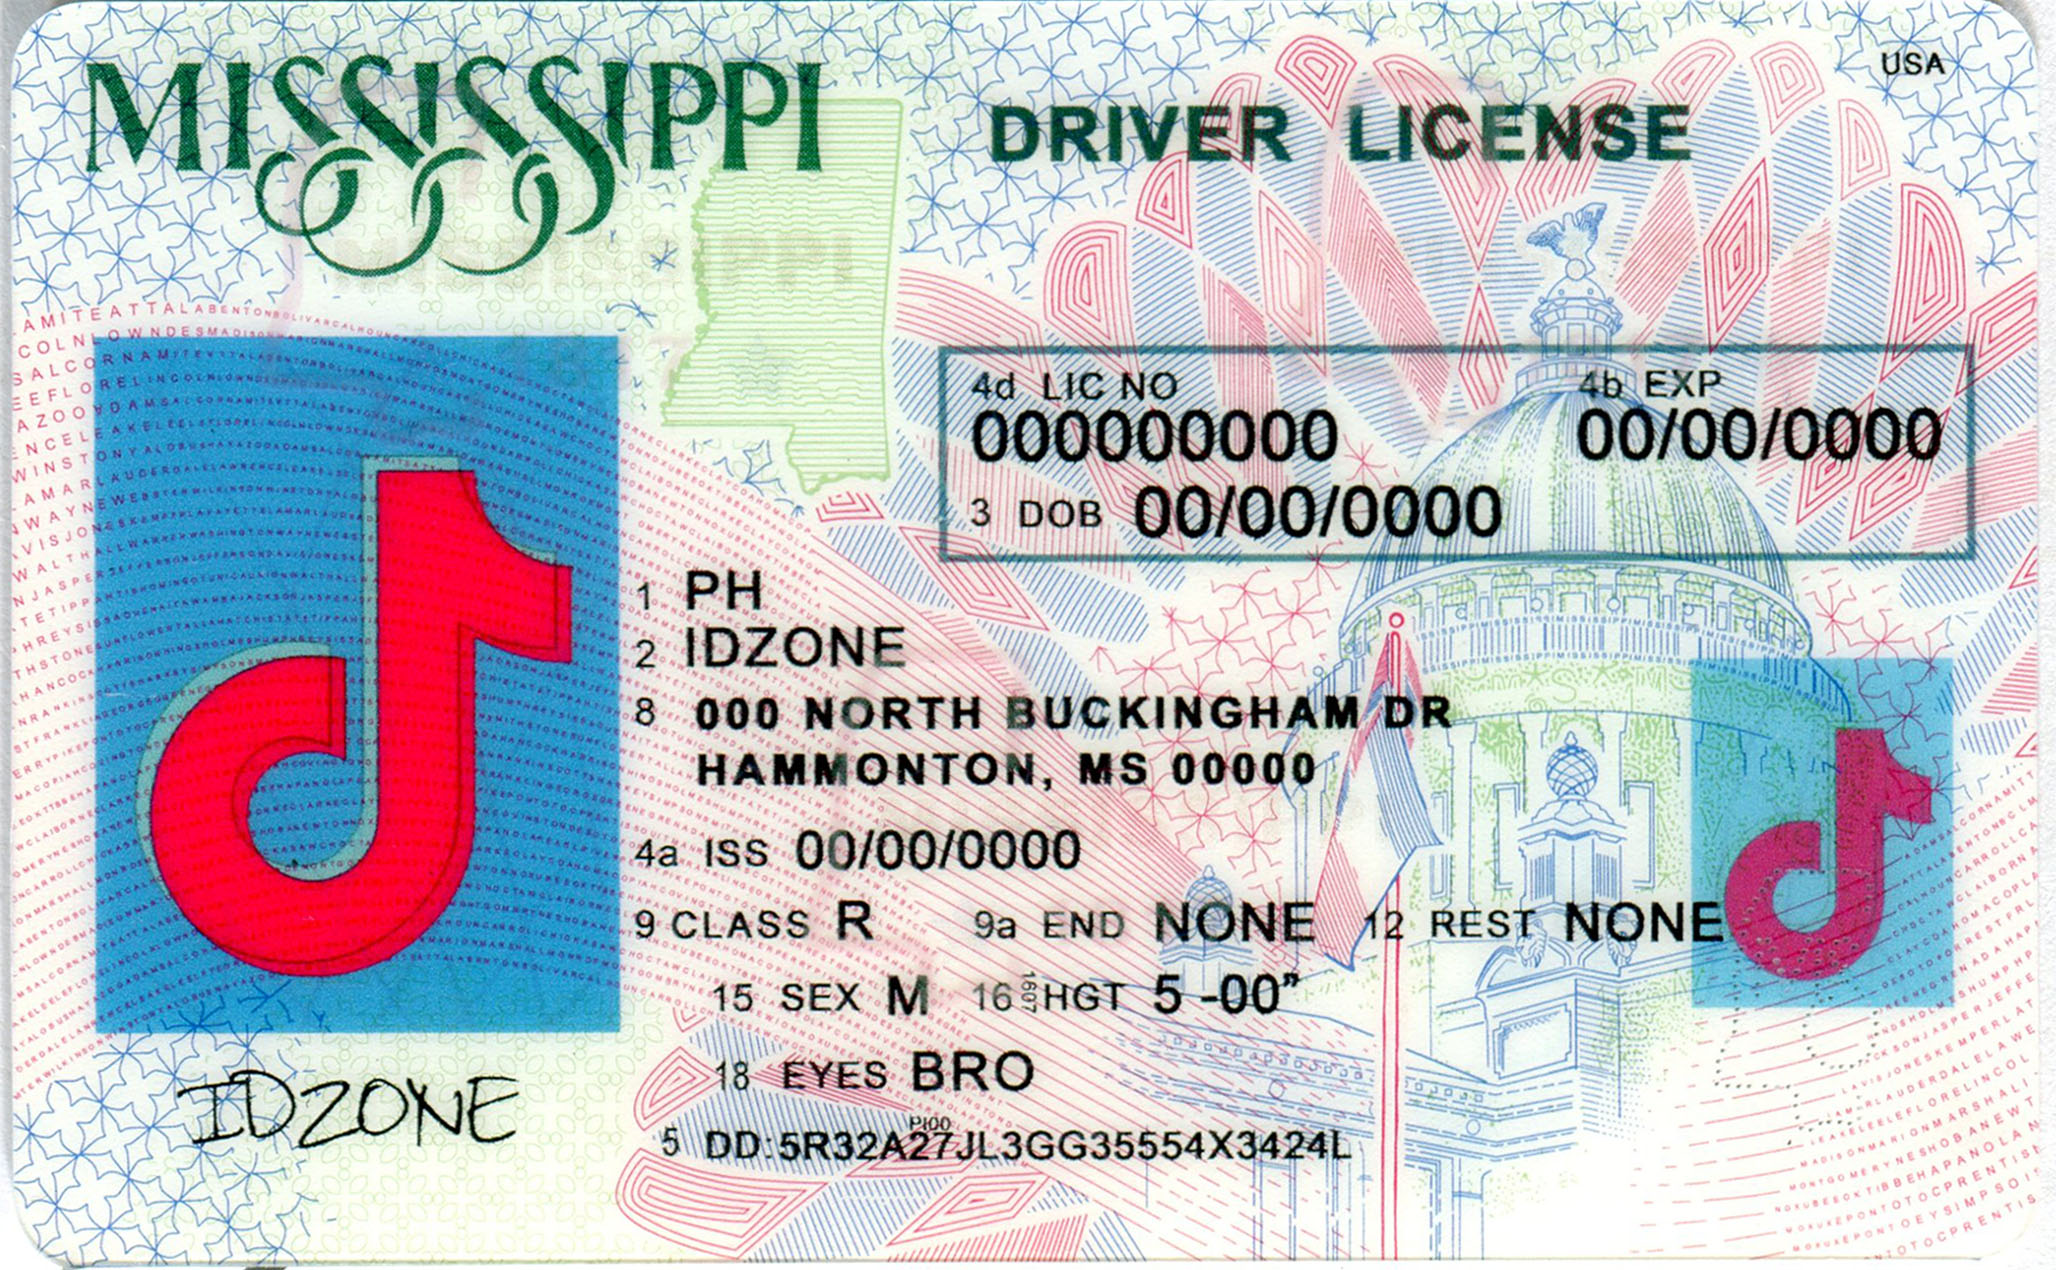 MISSISSIPPI-New fake id